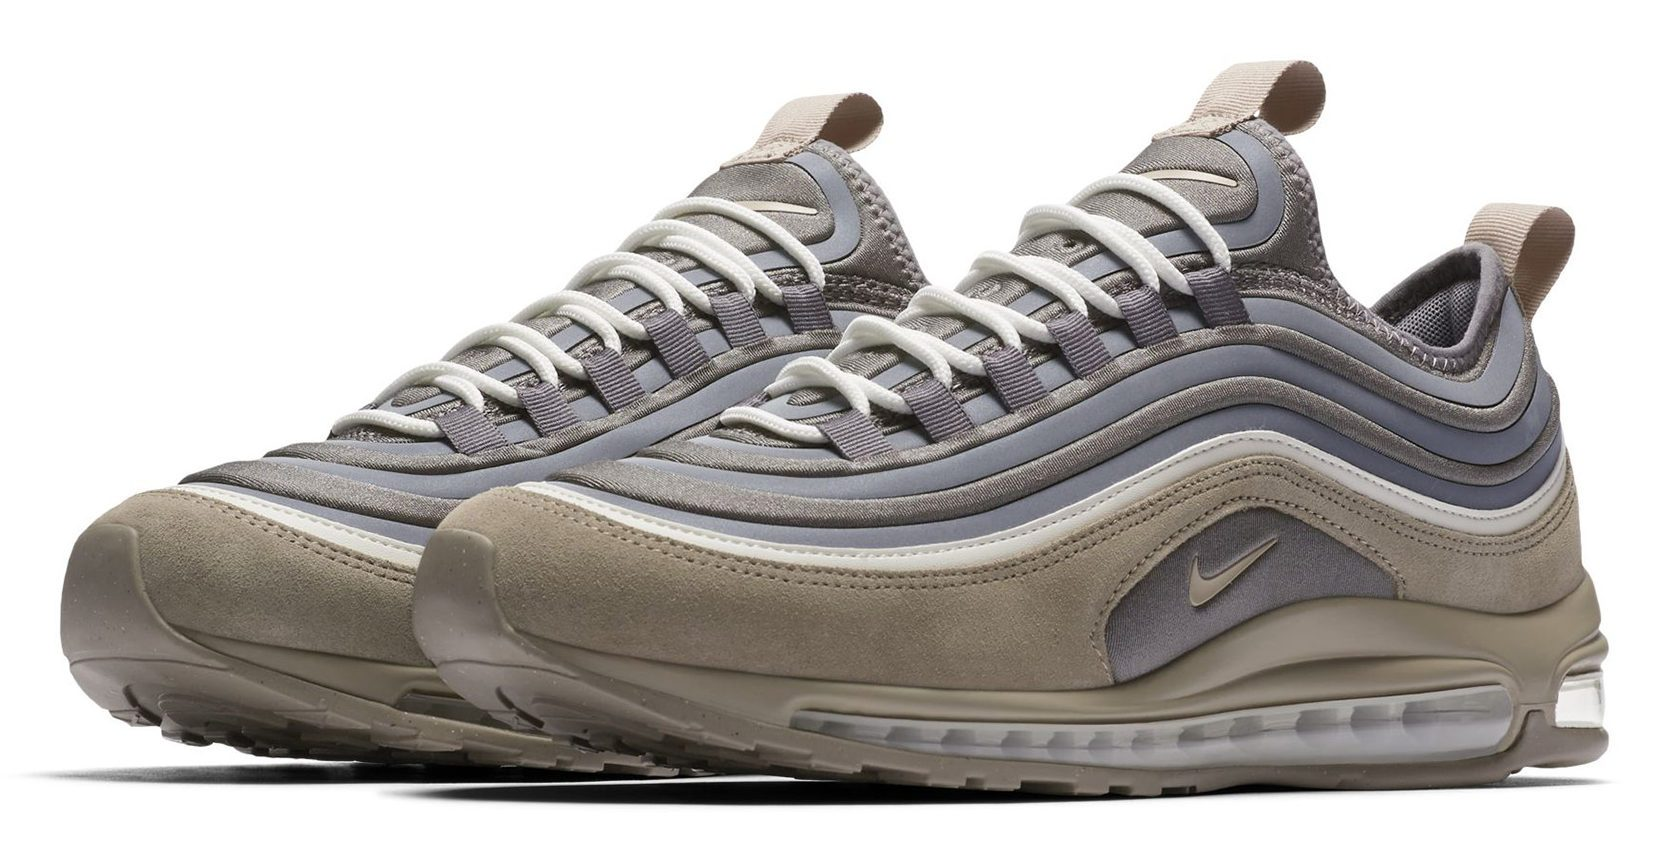 The Air Max 97 gets an ultra combo